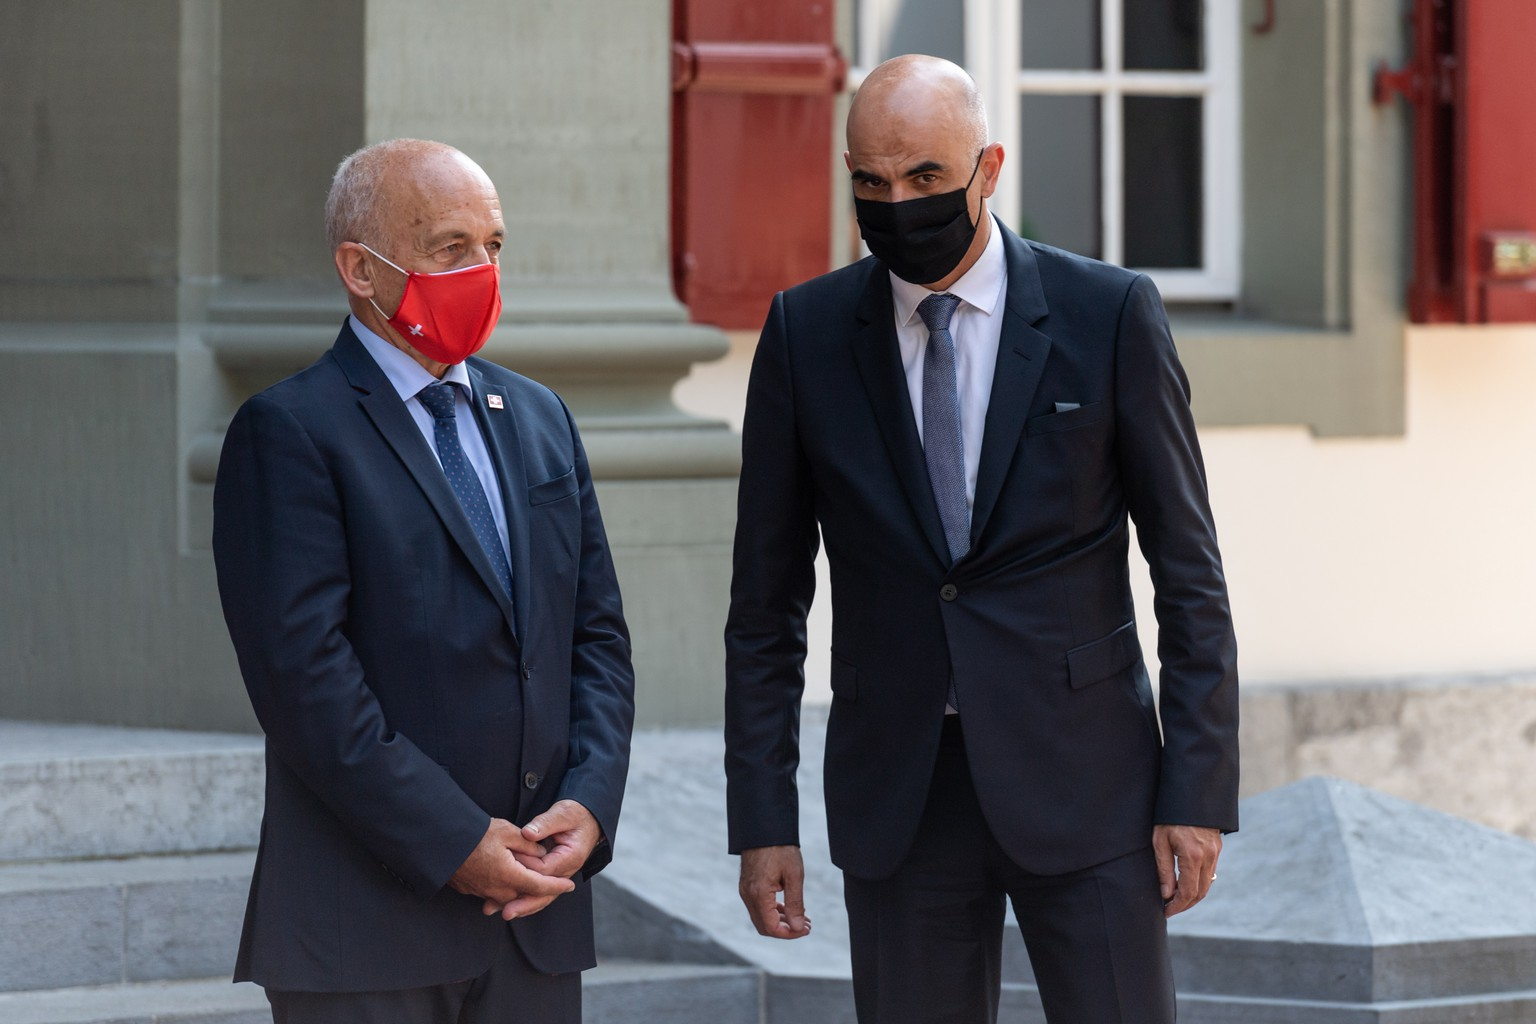 epa08678489 Swiss Federal councillors Ueli Maurer (L) and Alain Berset (R) wait for the arrival of Austrian Chancellor Sebastian Kurz at the Lohn residence of the Swiss government, in Kehrsatz near Bern, Switzerland, 18 September 2020.  EPA/ALESSANDRO DELLA VALLE